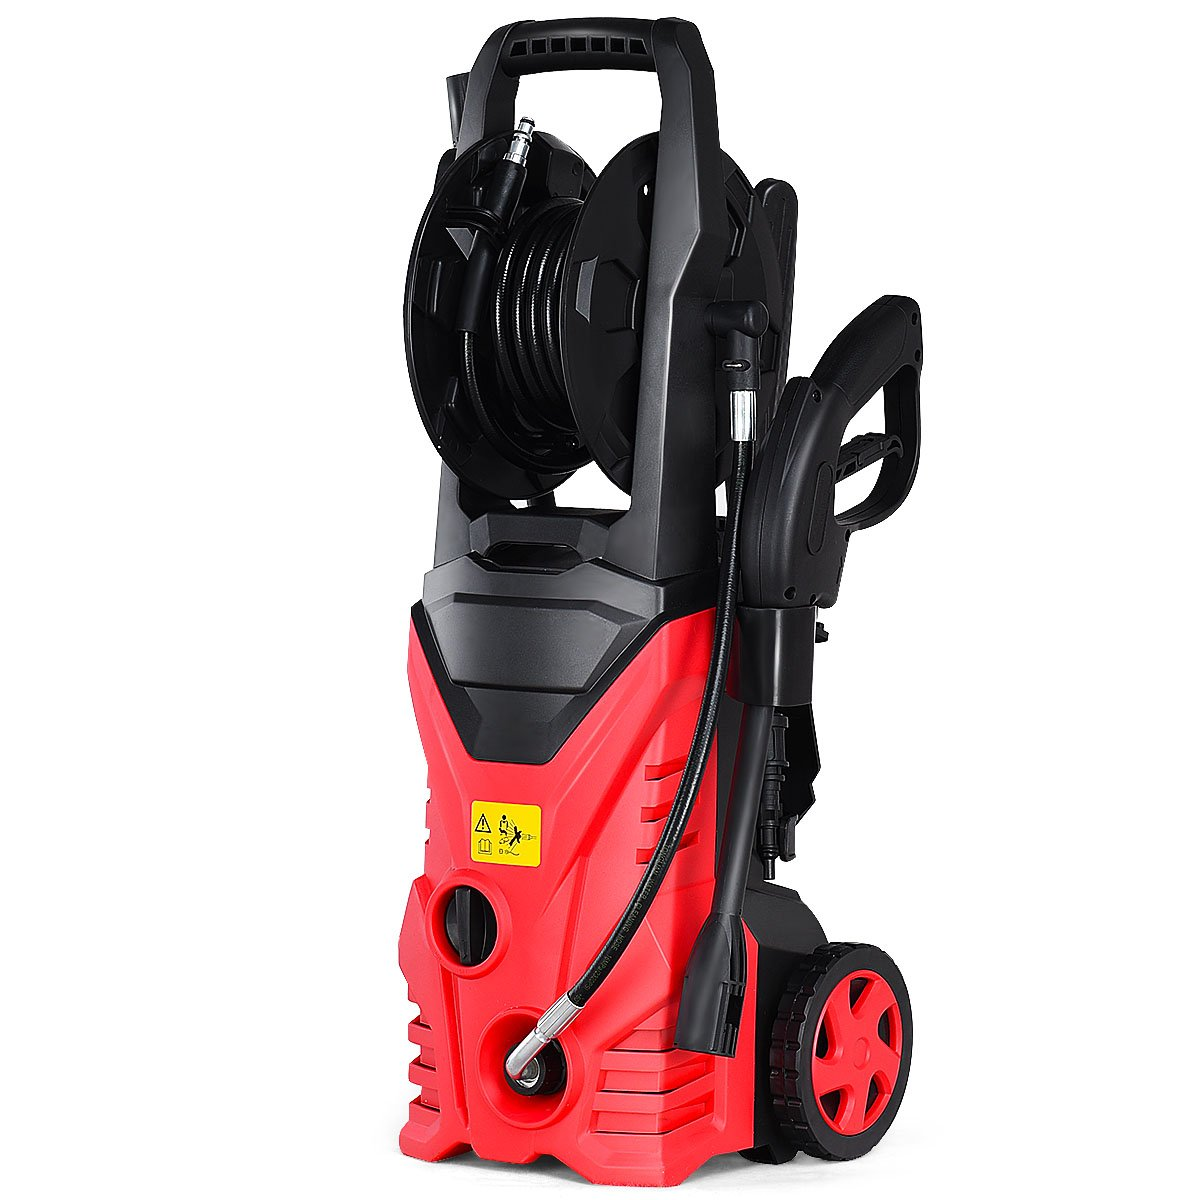 Goplus Electric High Pressure Washer 2030PSI 1.6GPM Power Pressure Washer Machine w/High Pressure Hose and Wash Brush (Red)